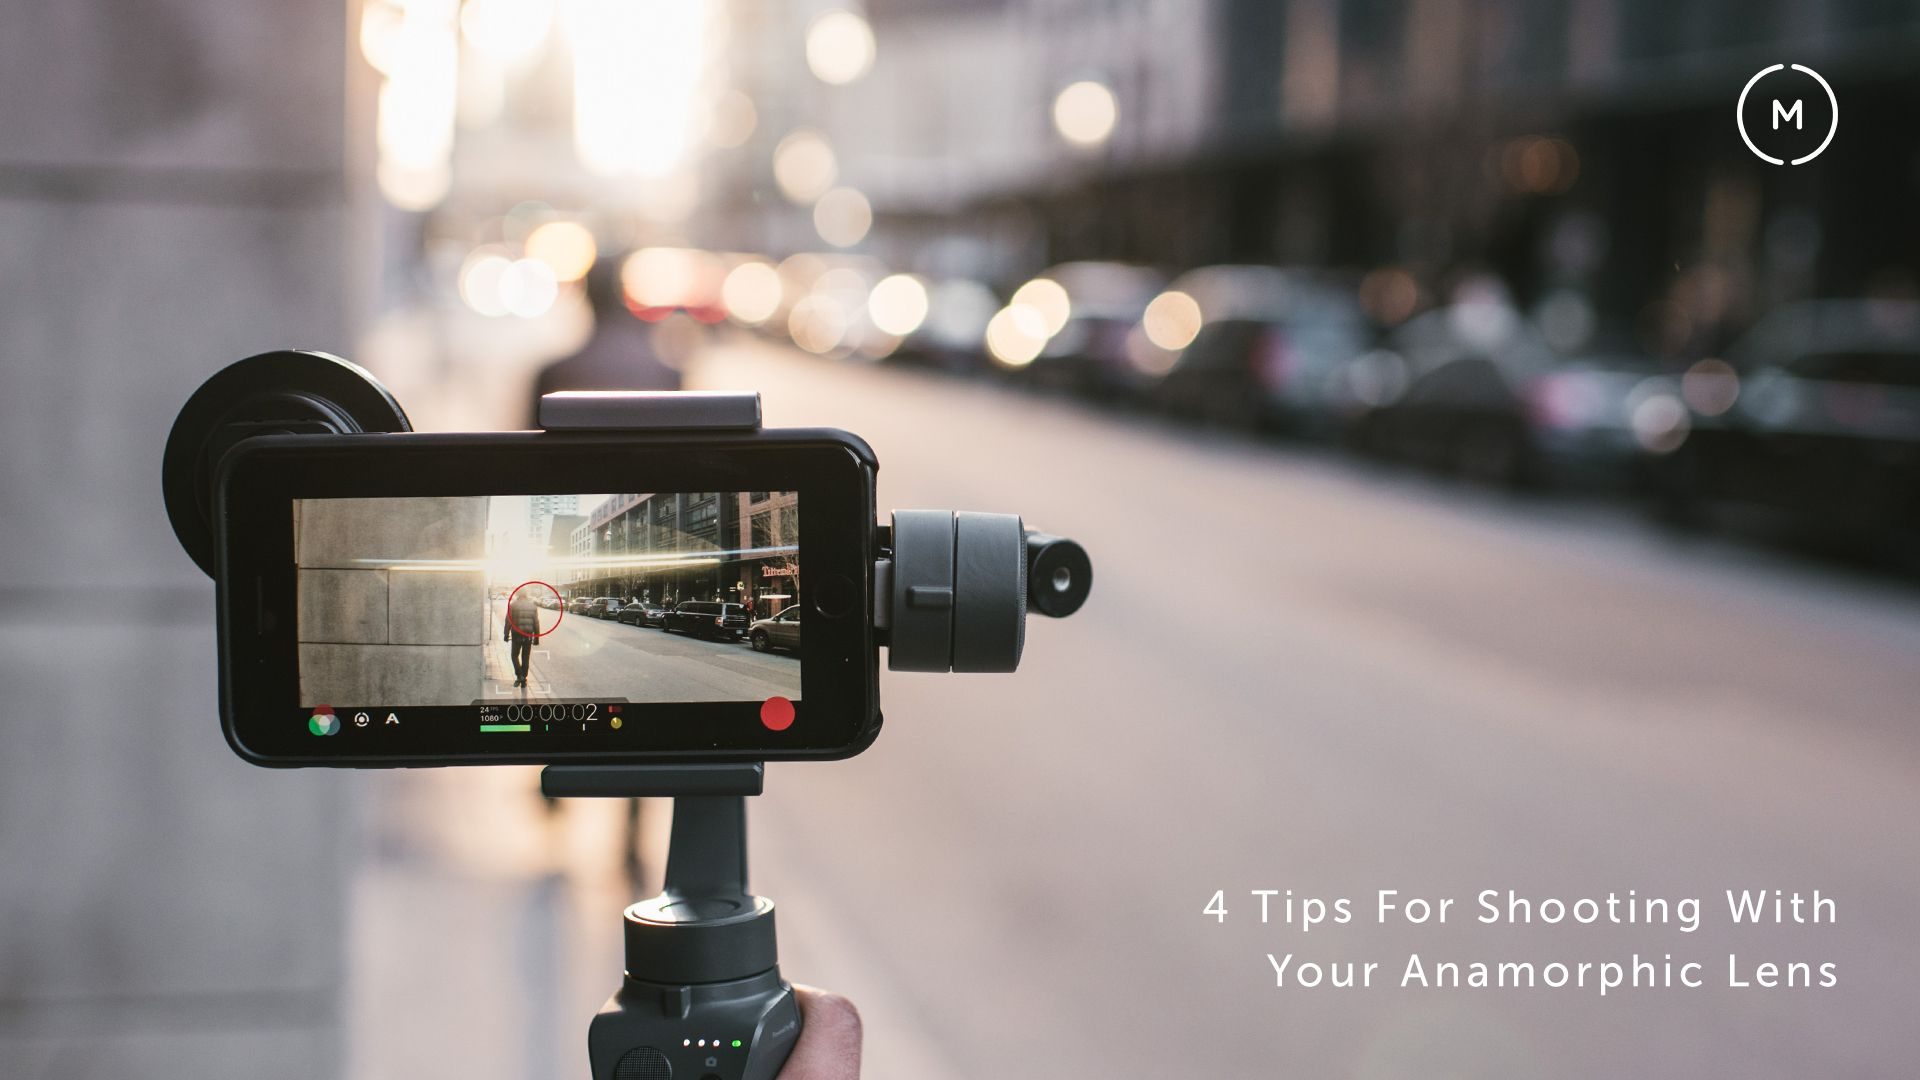 Anamorphic Lens for iPhone, Pixel, and Galaxy phones | Wish List